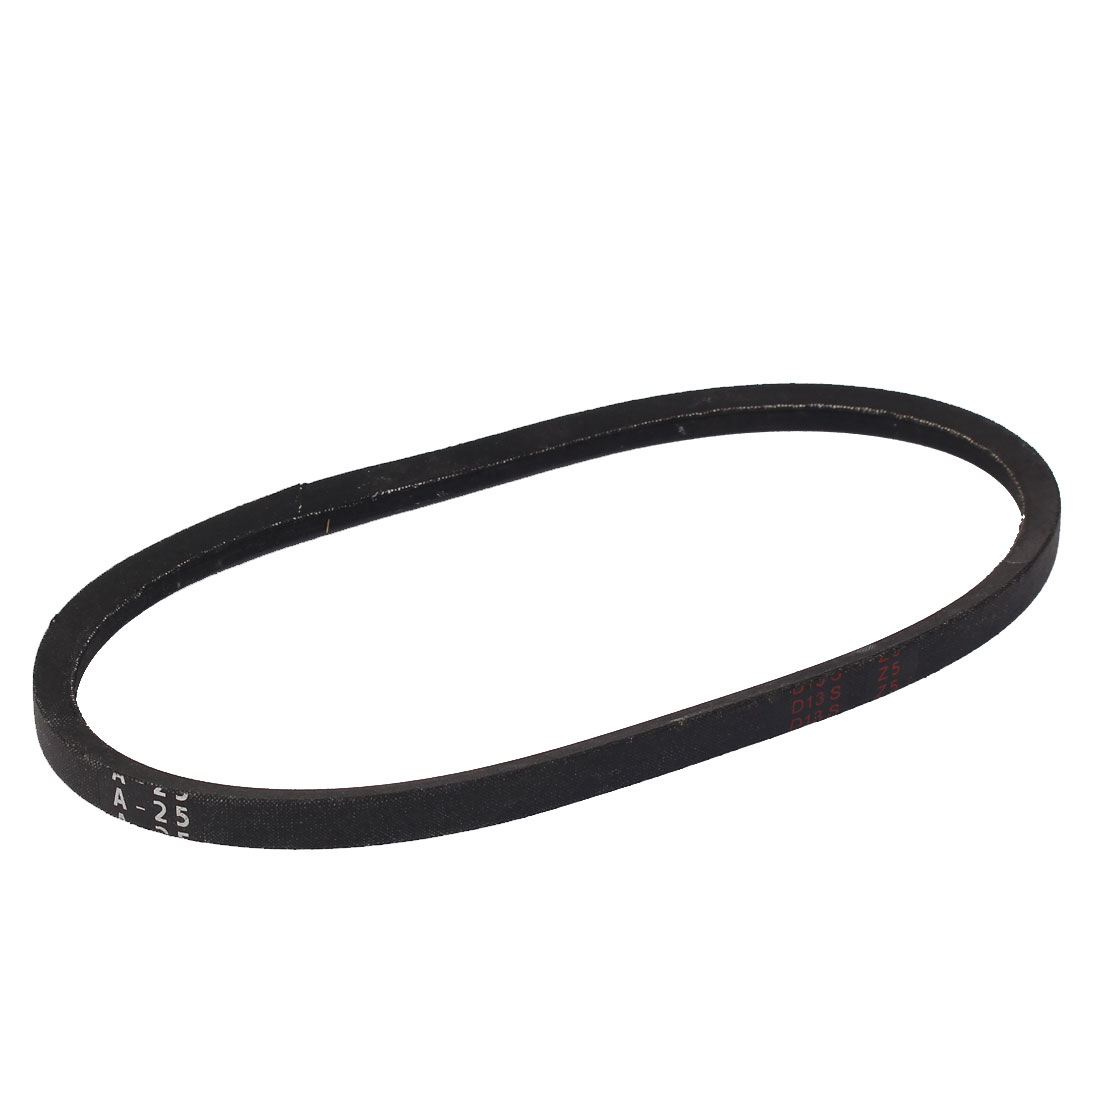 "A25 Yard Machine Lawn Mower Tractor Drive Belt V-Belt 25"" x 1/2"" Black"